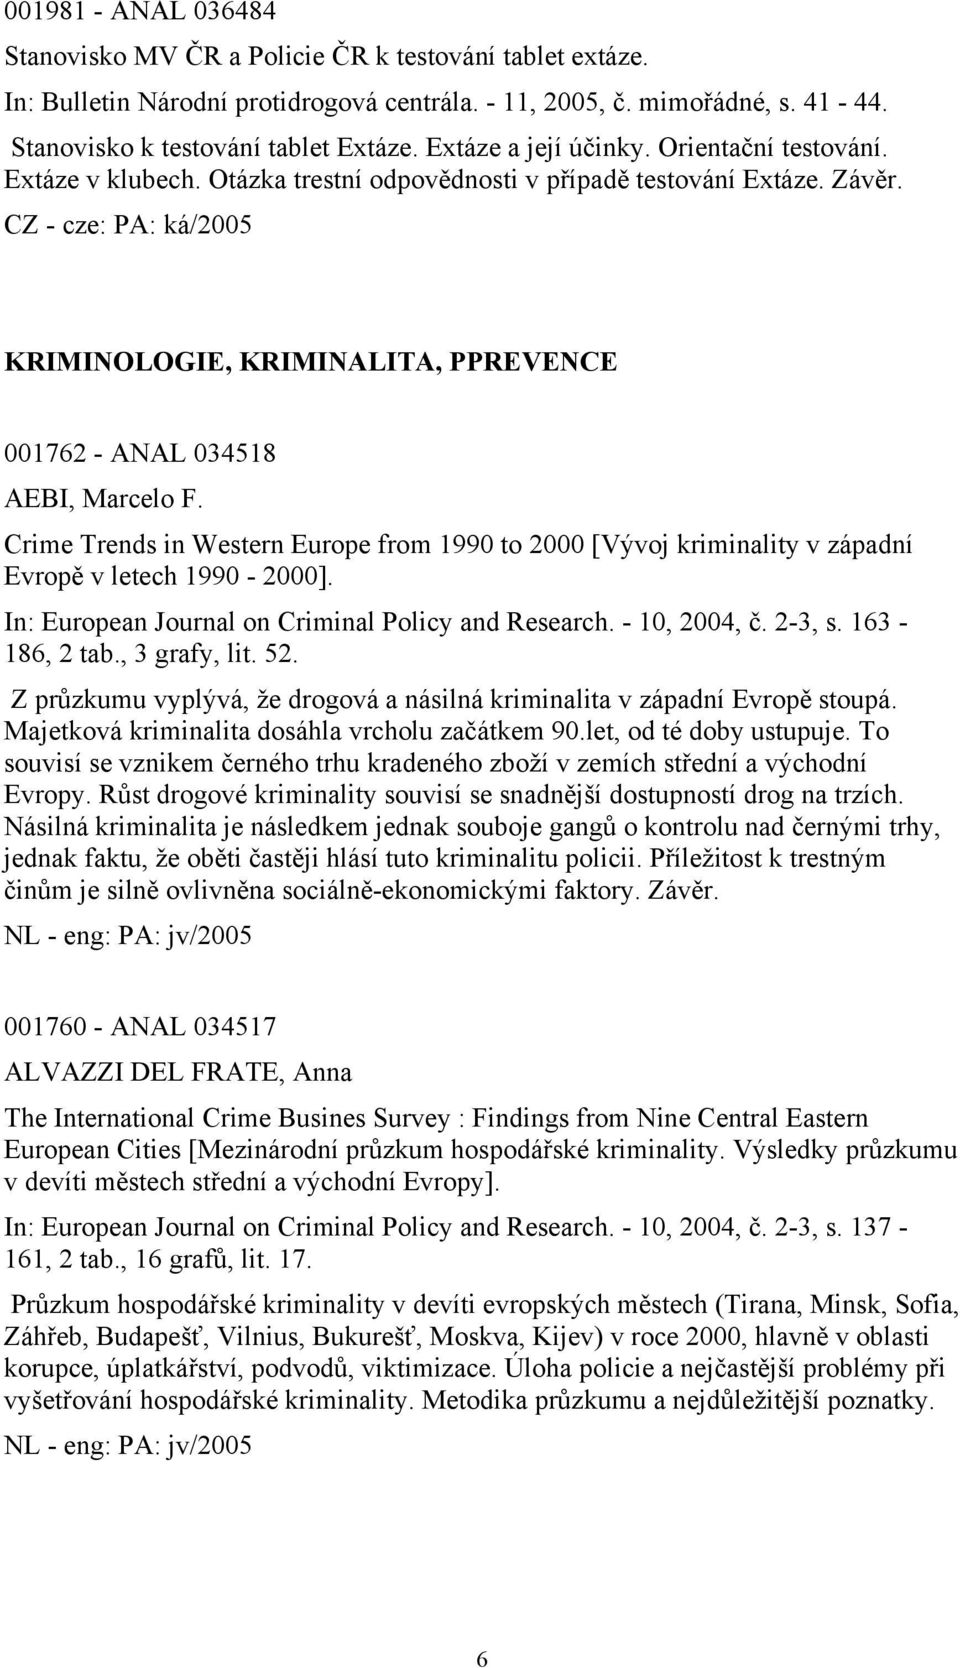 Crime Trends in Western Europe from 1990 to 2000 [Vývoj kriminality v západní Evropě v letech 1990-2000]. In: European Journal on Criminal Policy and Research. - 10, 2004, č. 2-3, s. 163-186, 2 tab.